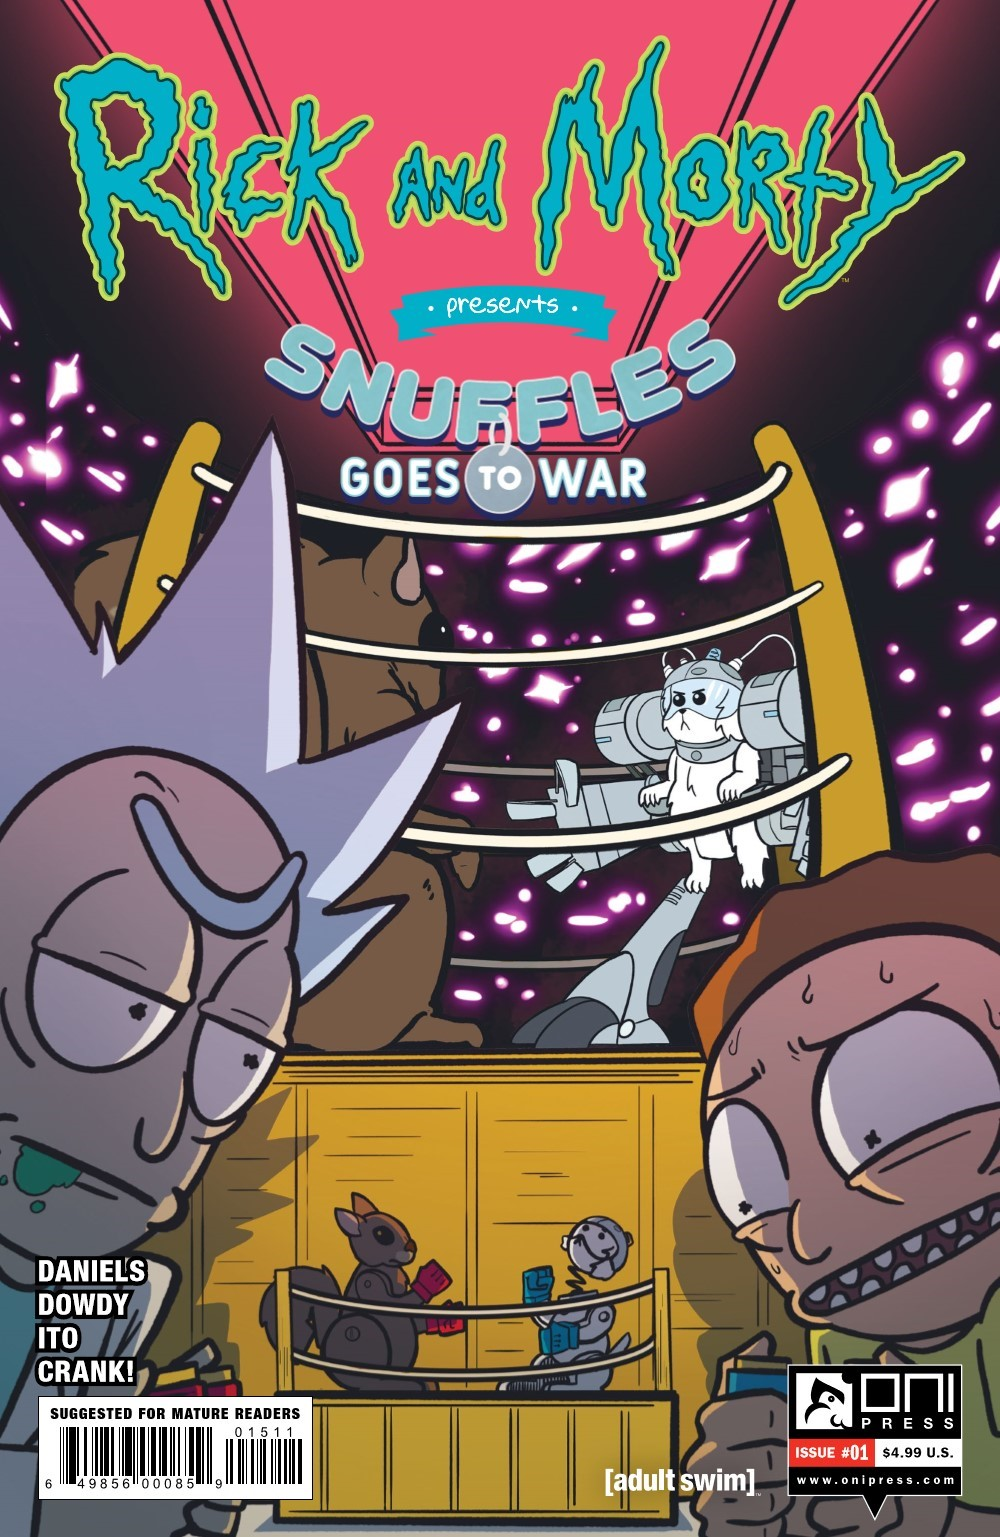 RM-PRES-SNUFFLES-1-REFERENCE-01 ComicList: Oni Press New Releases for 10/06/2021